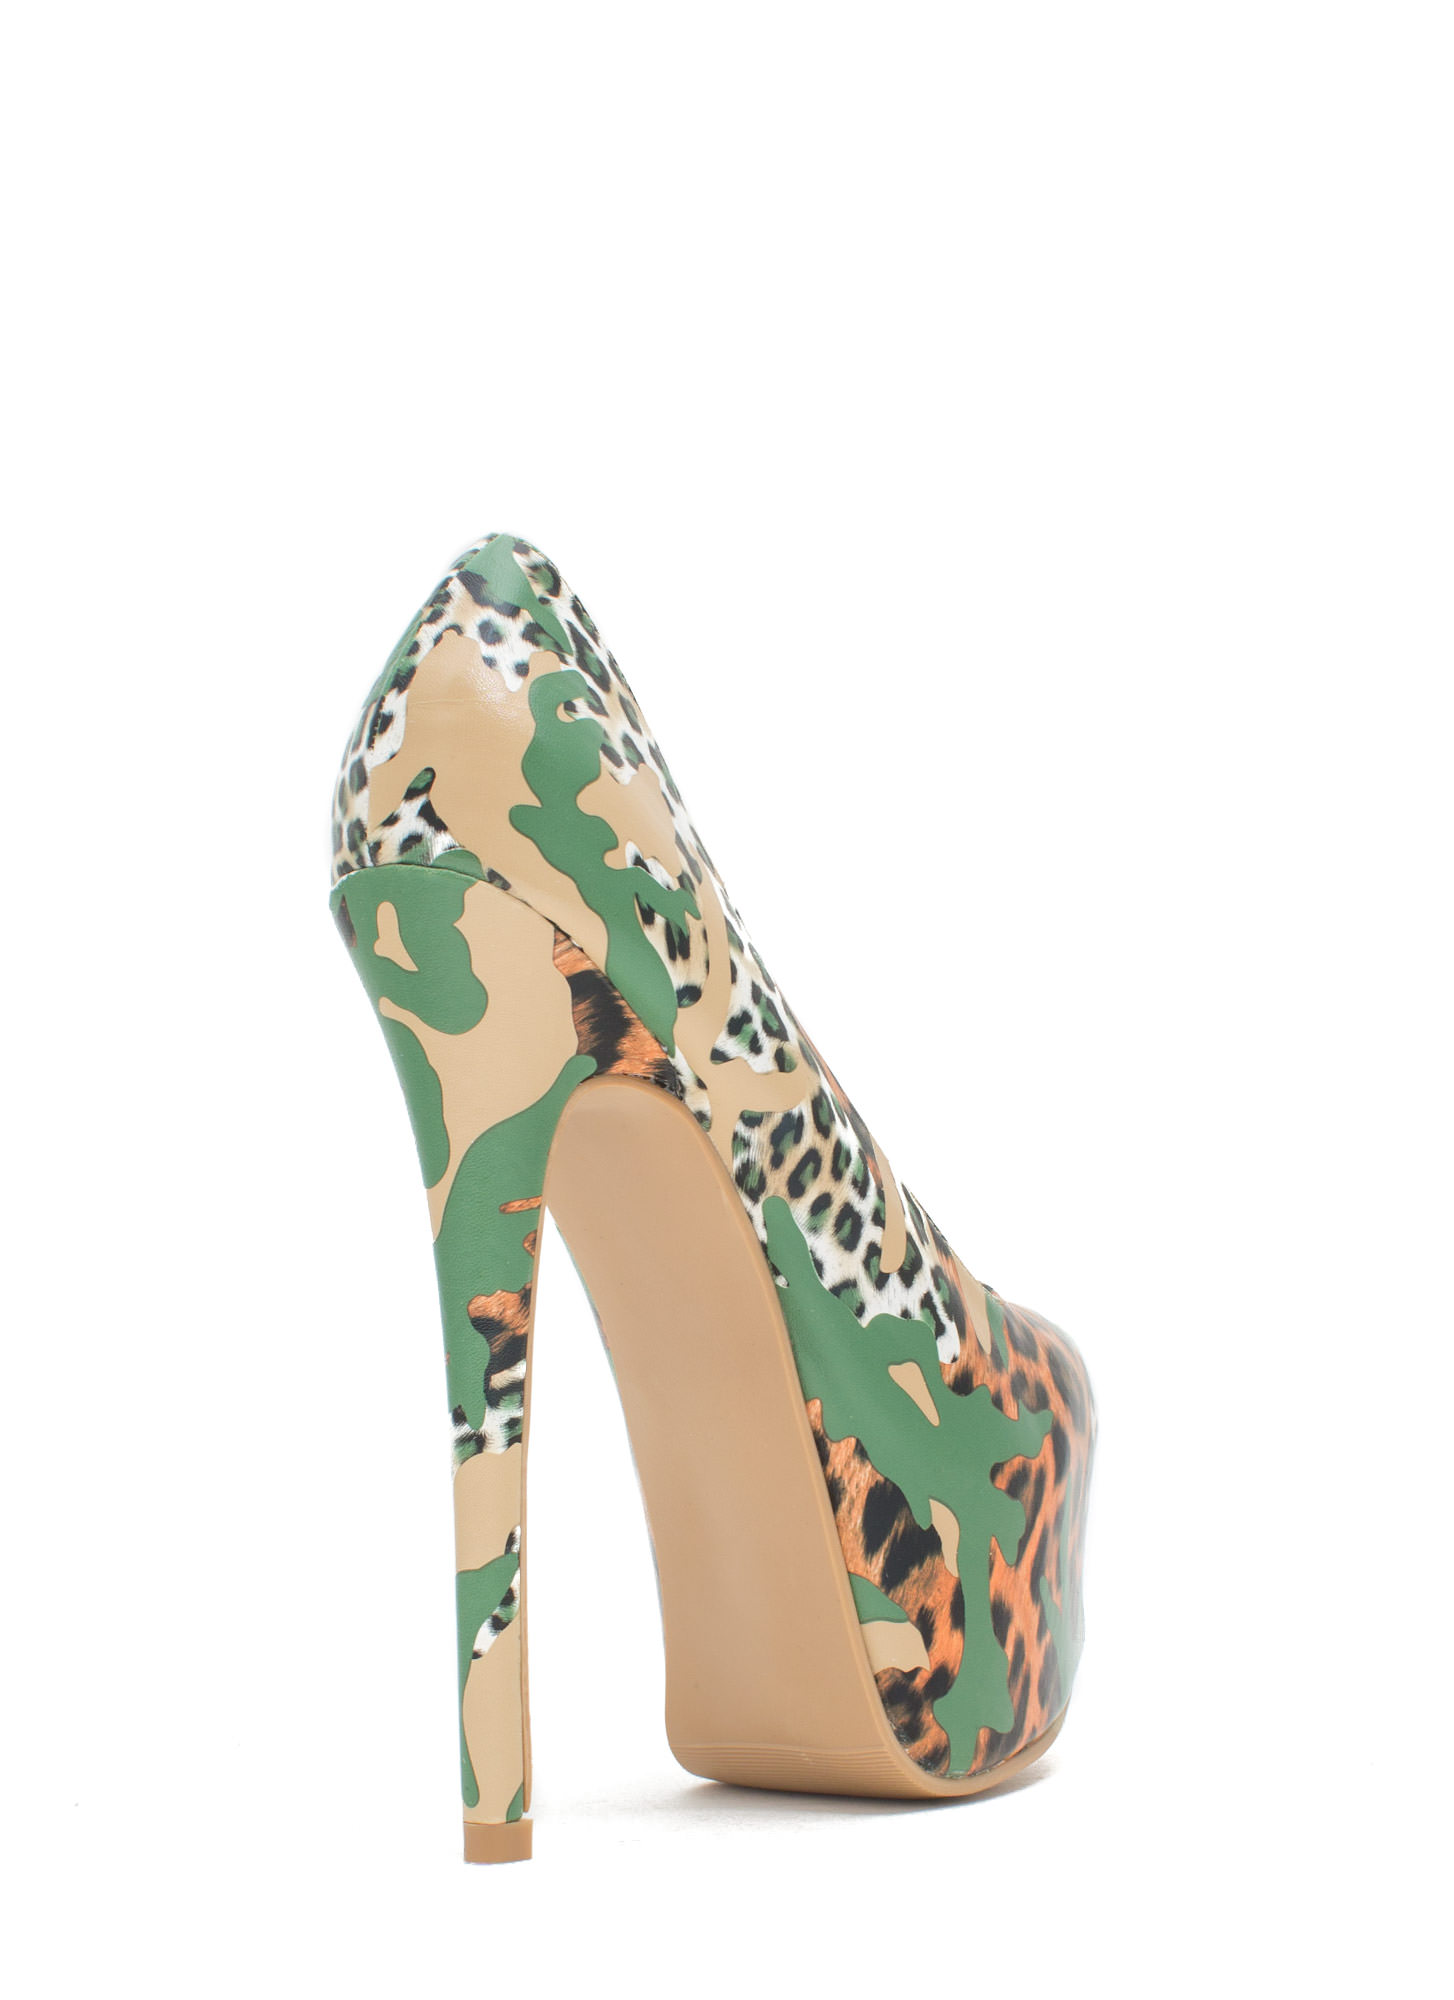 Wild Statement Platform Stiletto Heels LEOPARD